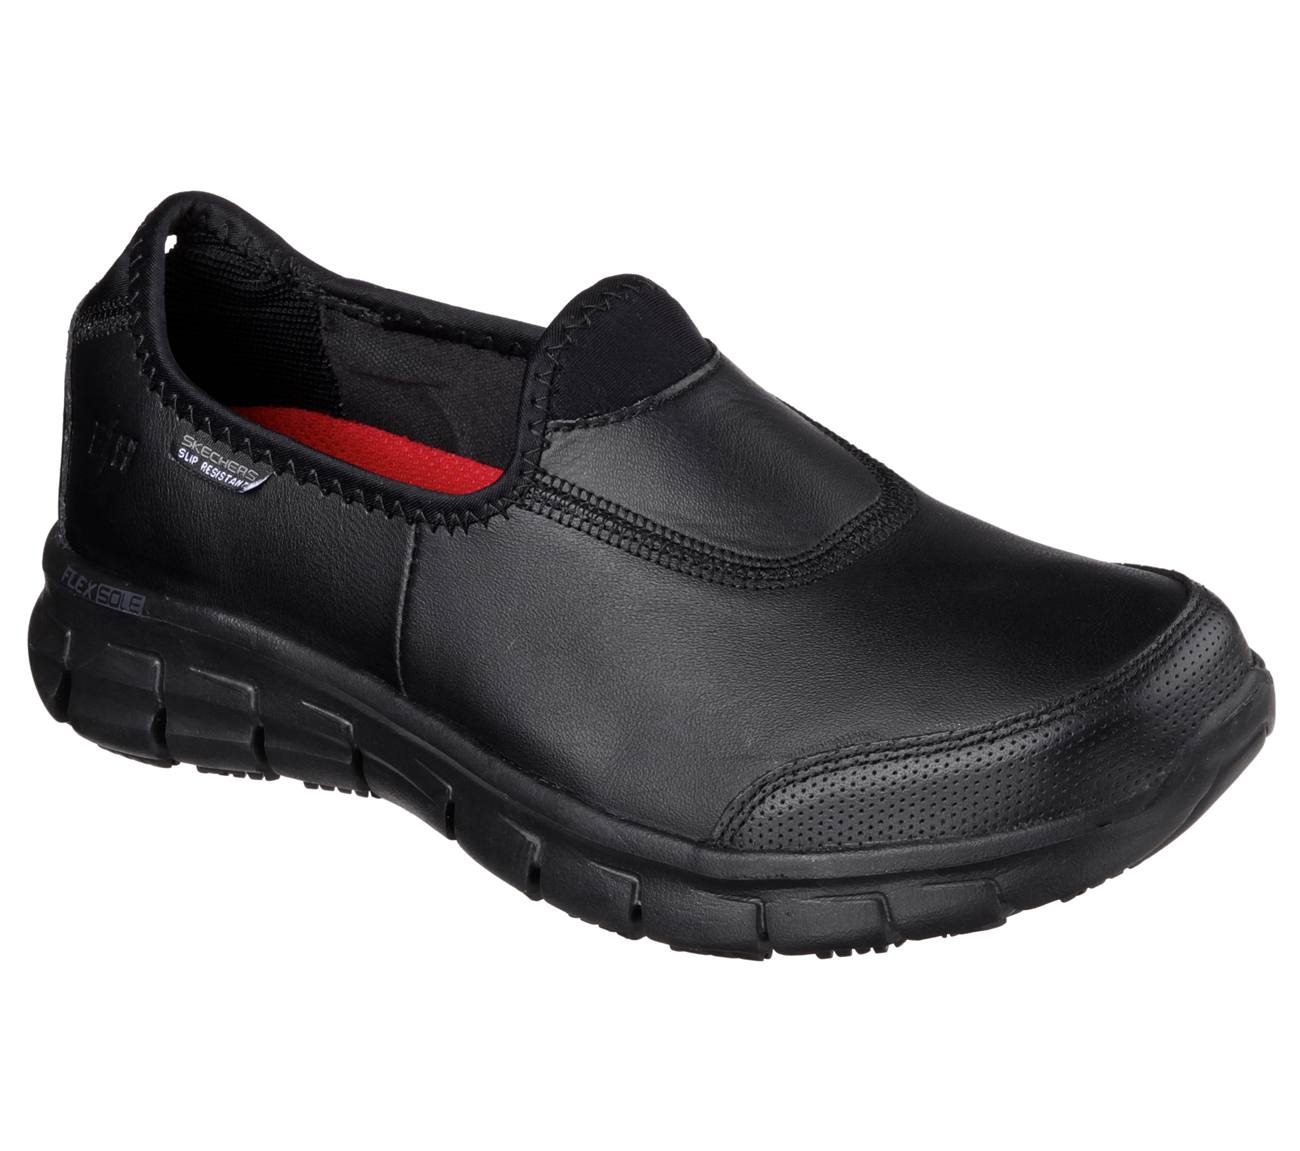 Non Slip Chemical Resistant Work Shoes For Men